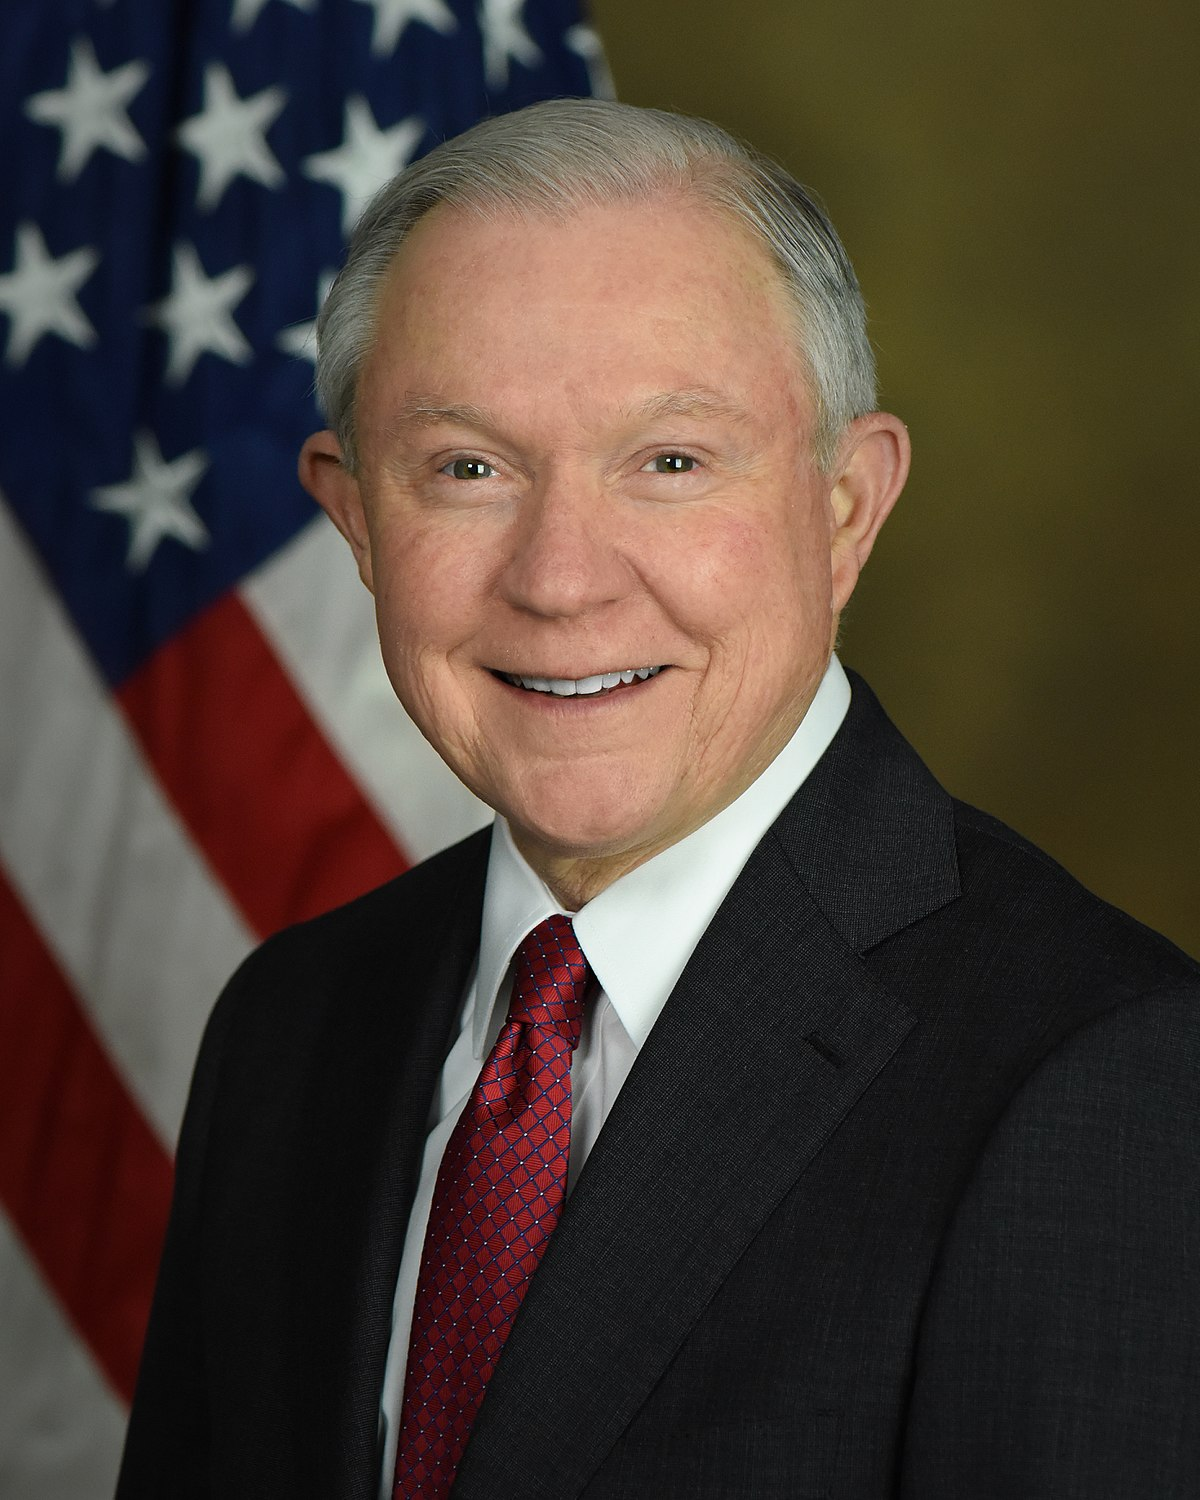 Jeff Sessions's Headshot